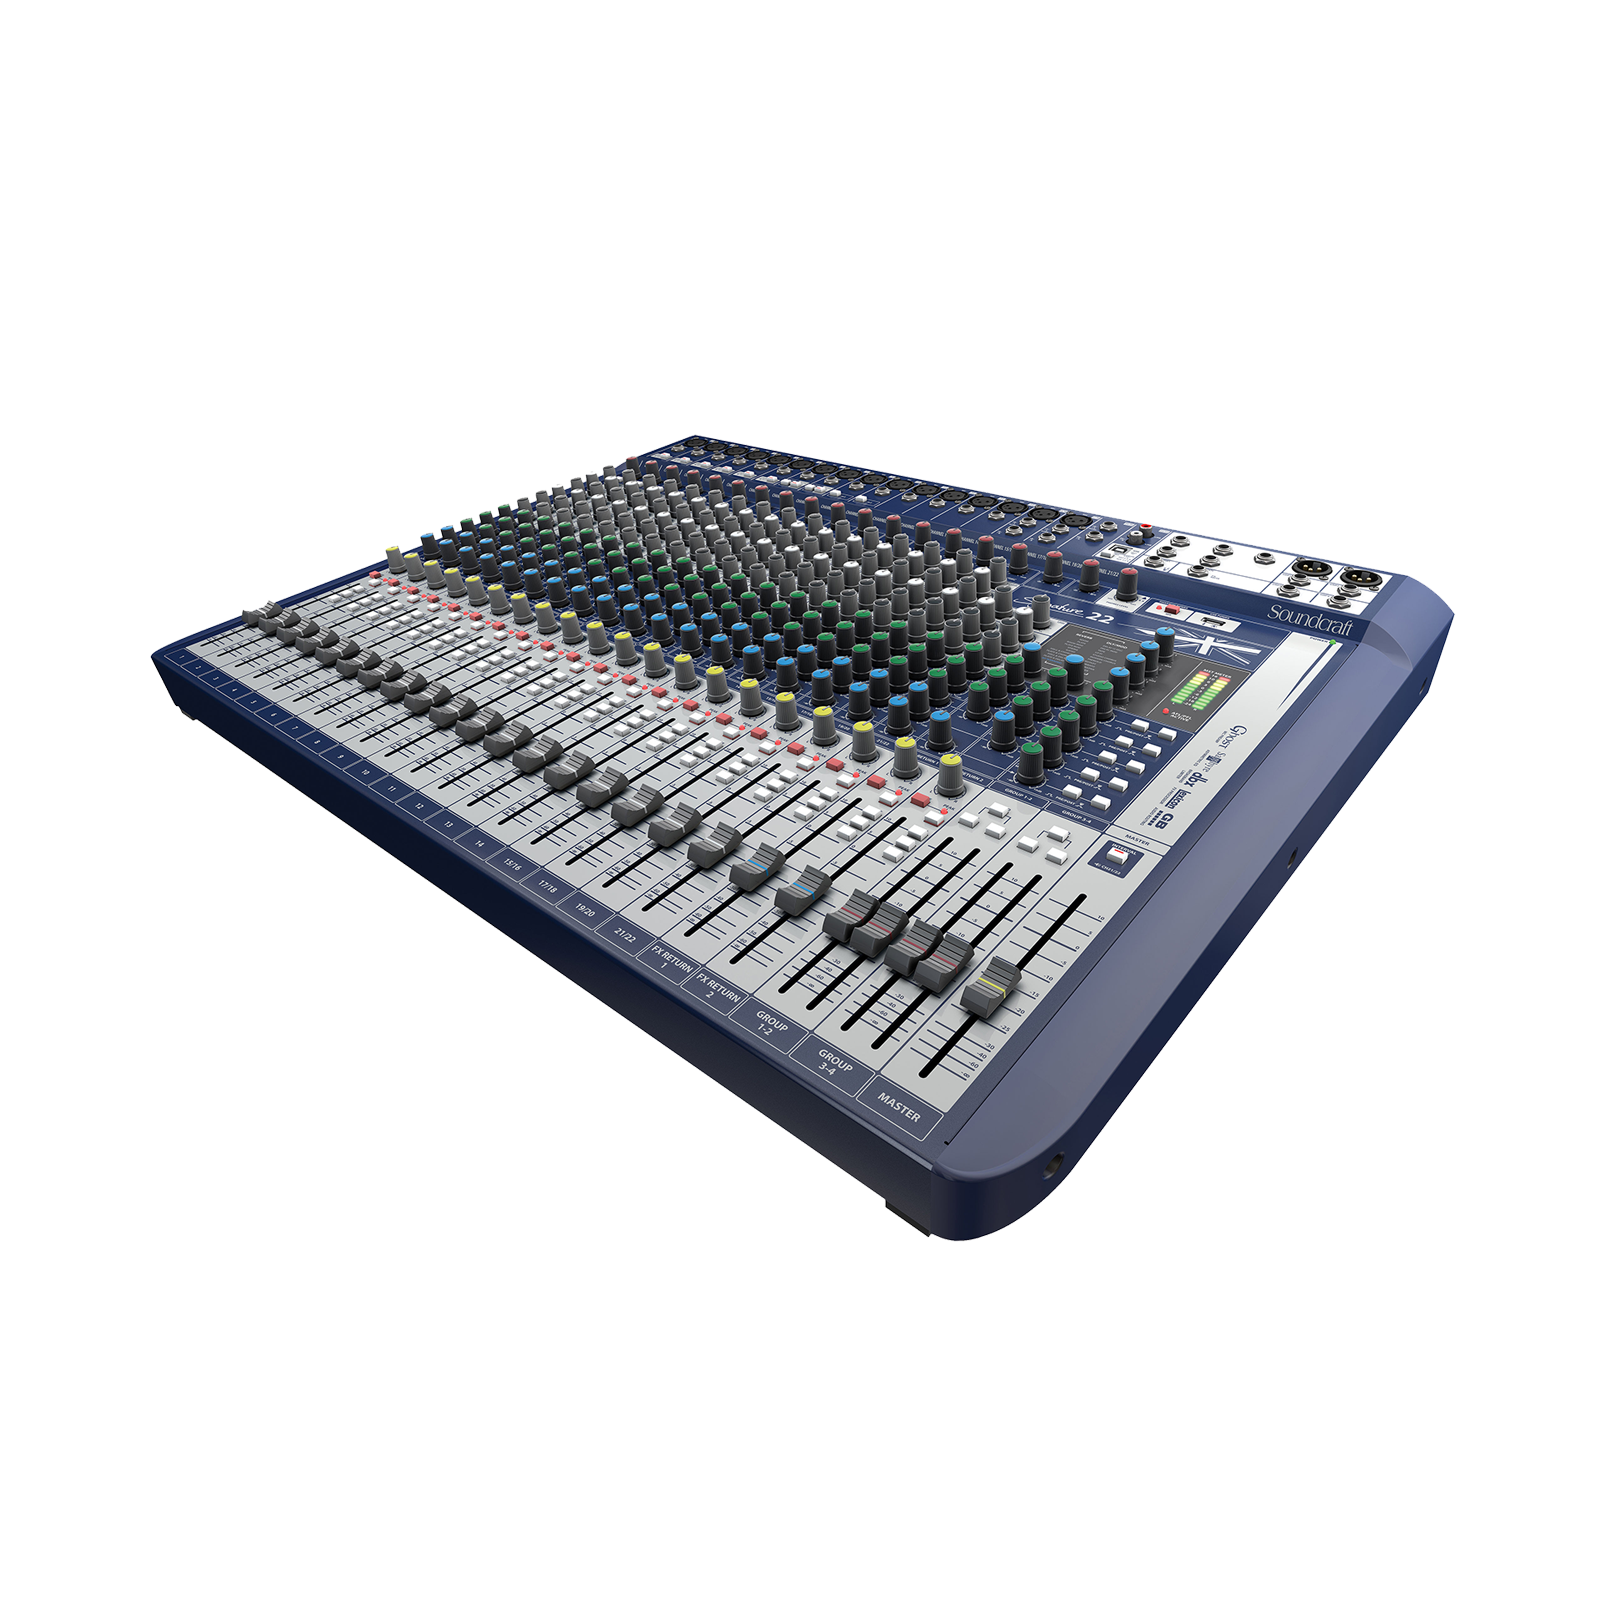 Signature 22 - Dark Blue - 22-input analogue mixer with onboard effects - Hero